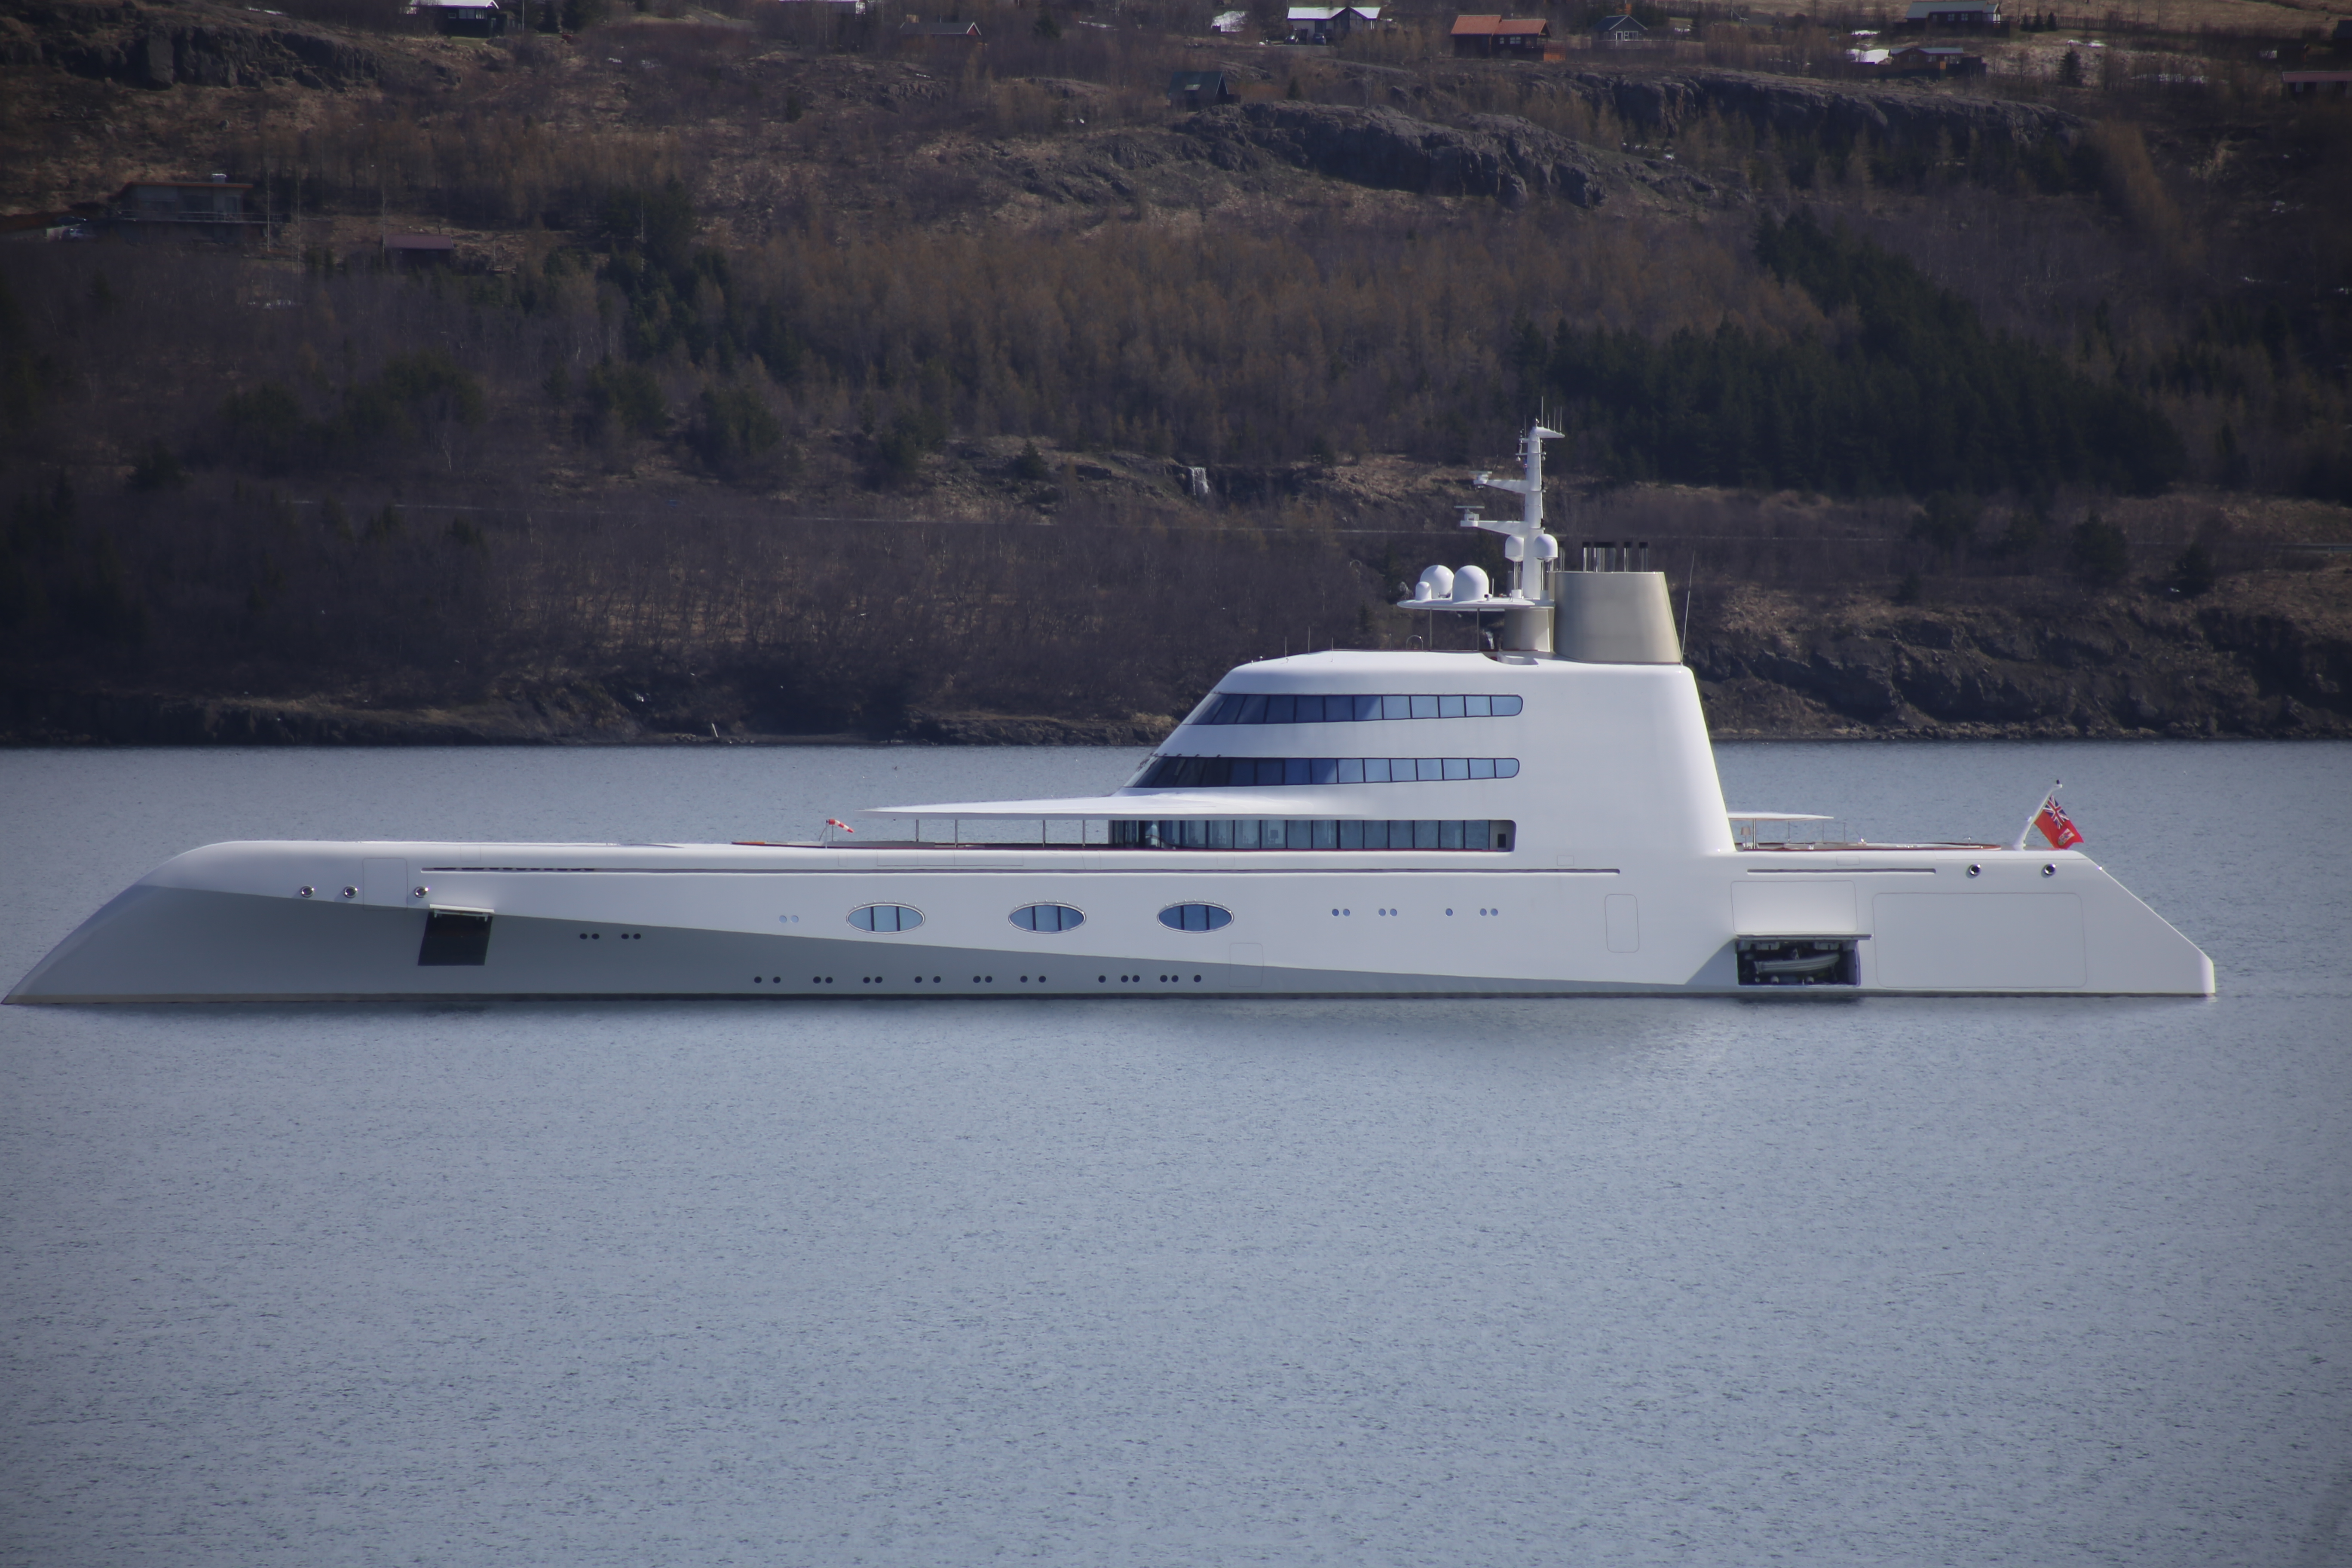 Andrey Melnichenko's Superyacht A which is on sale for $300 million